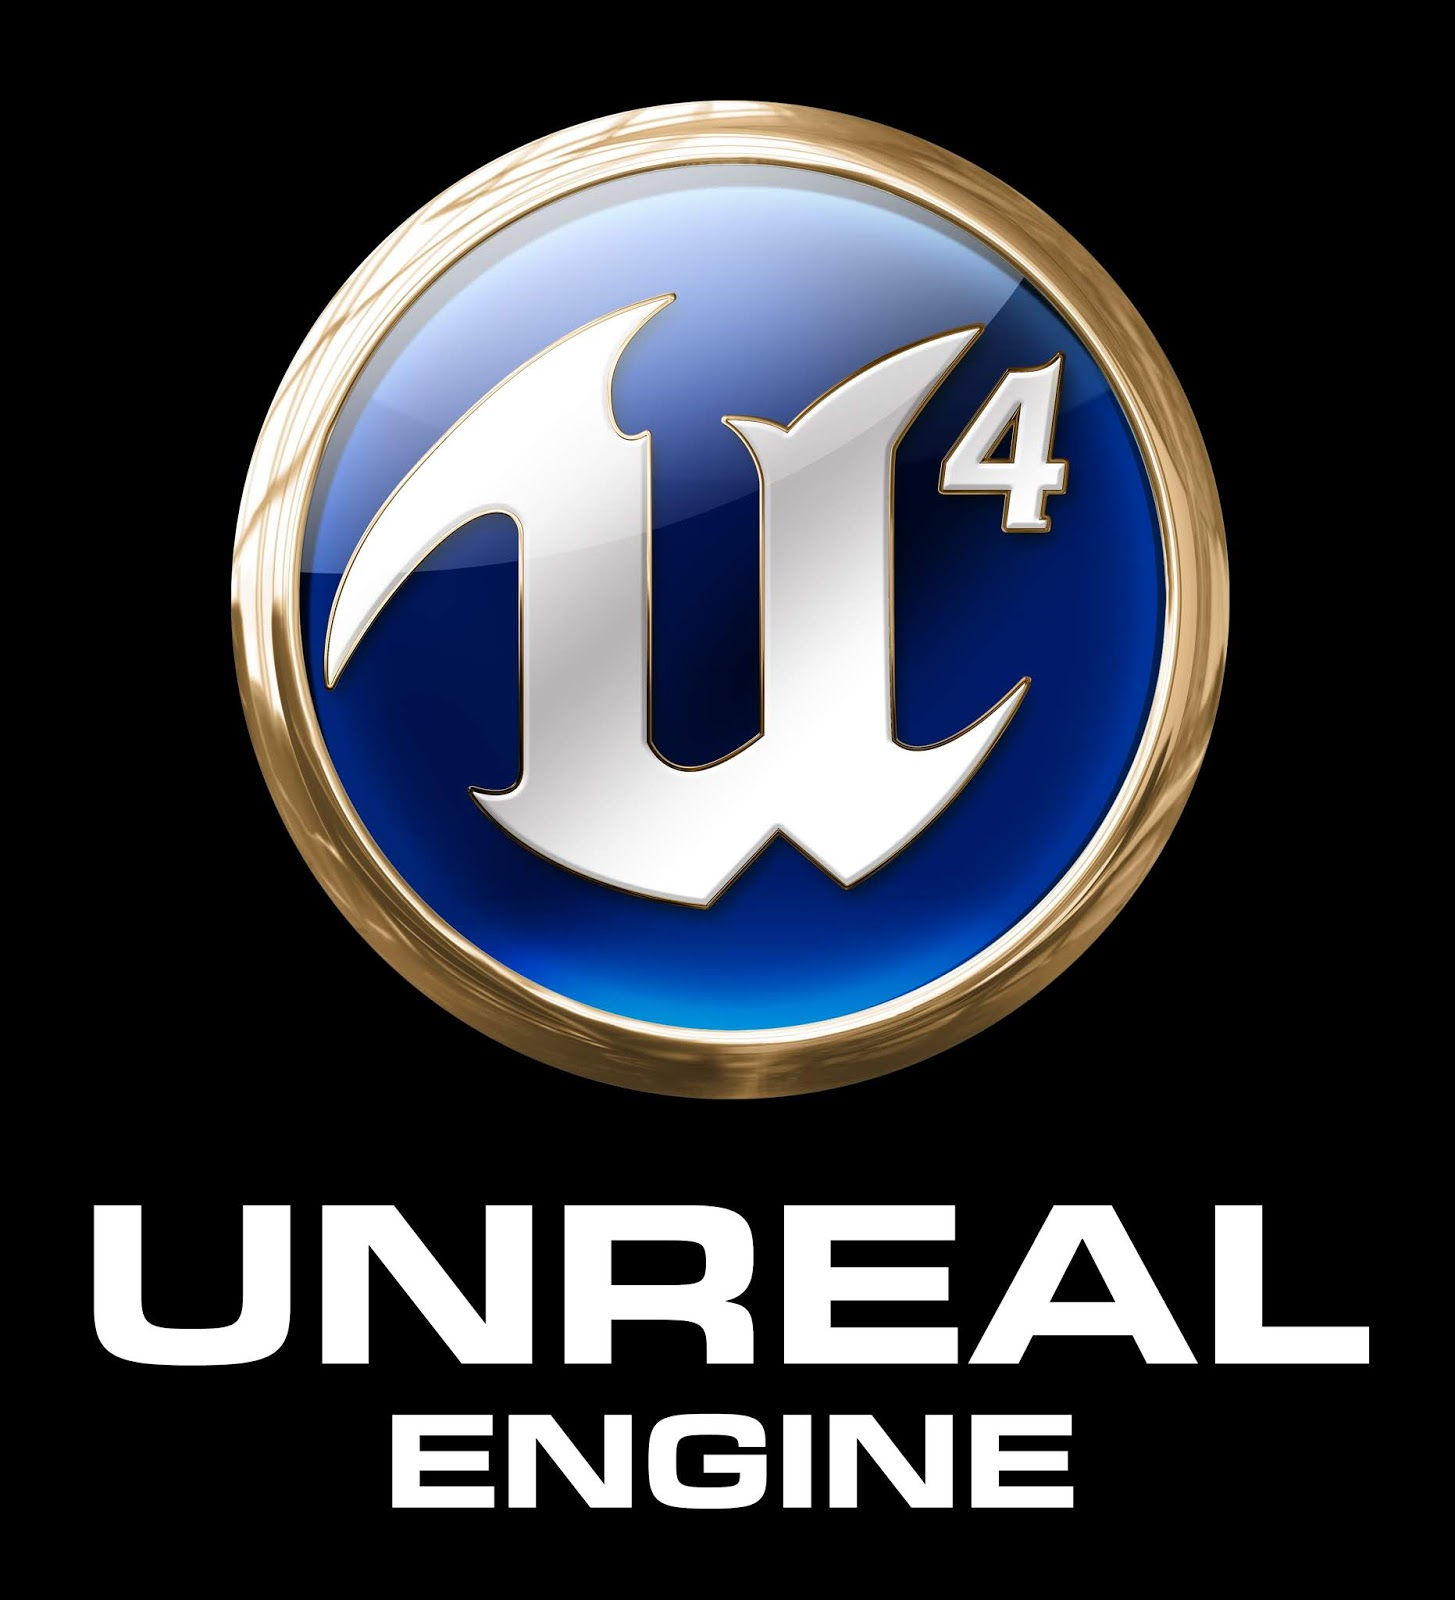 Unreal Engine 4 19 0 Free Download - Ultra Games